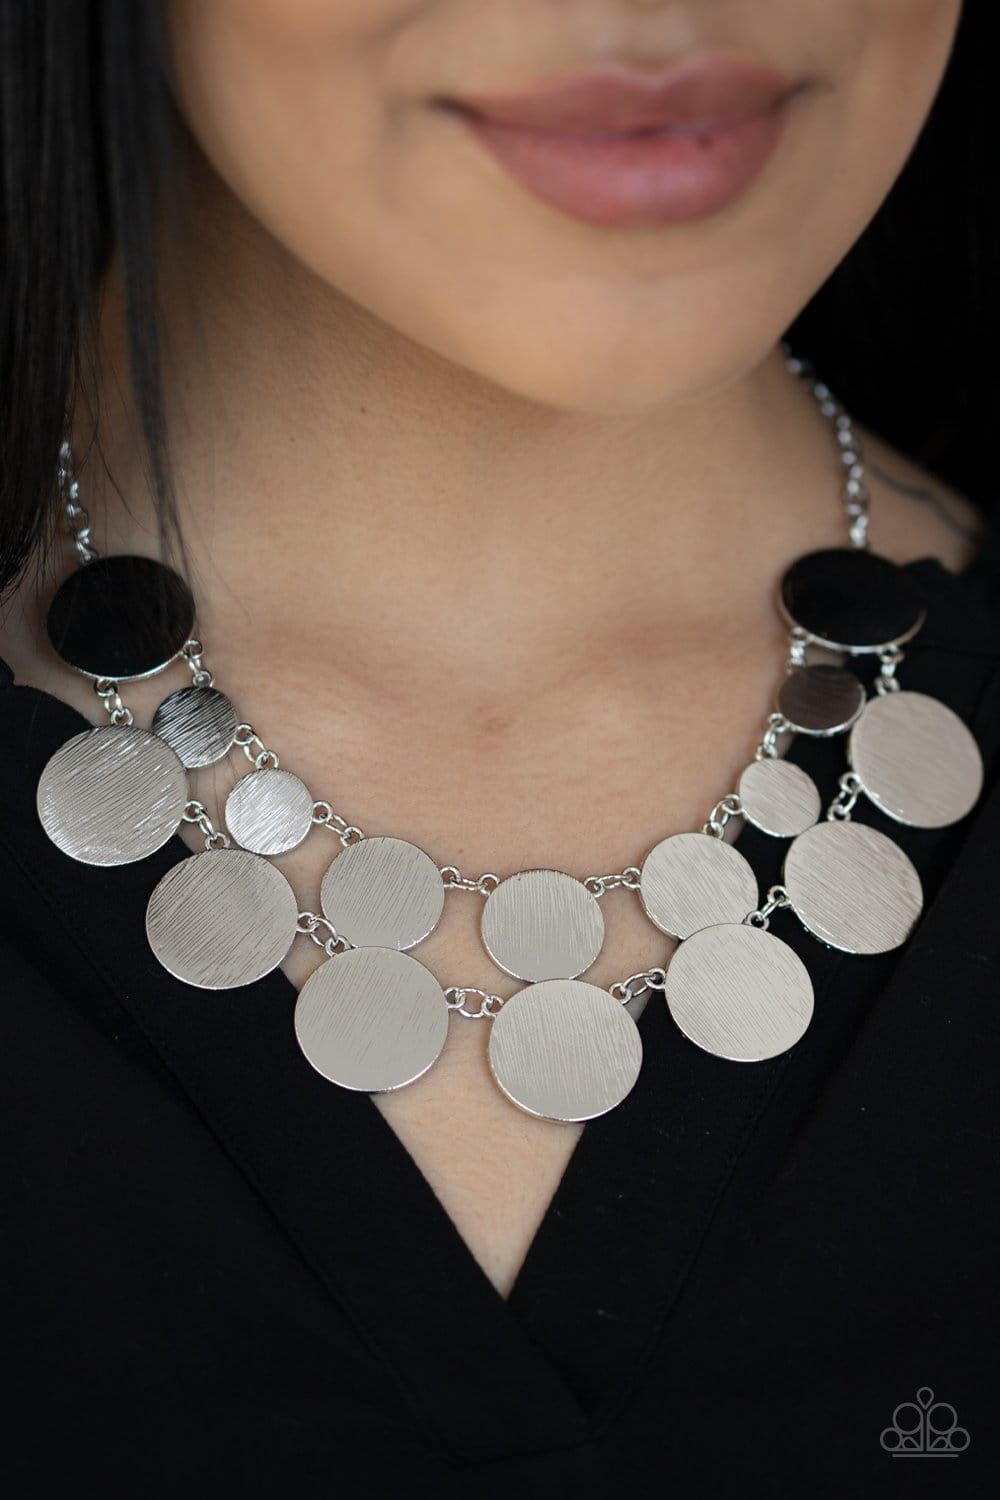 Paparazzi: Stop and Reflect - Silver Necklace - Jewels N' Thingz Boutique